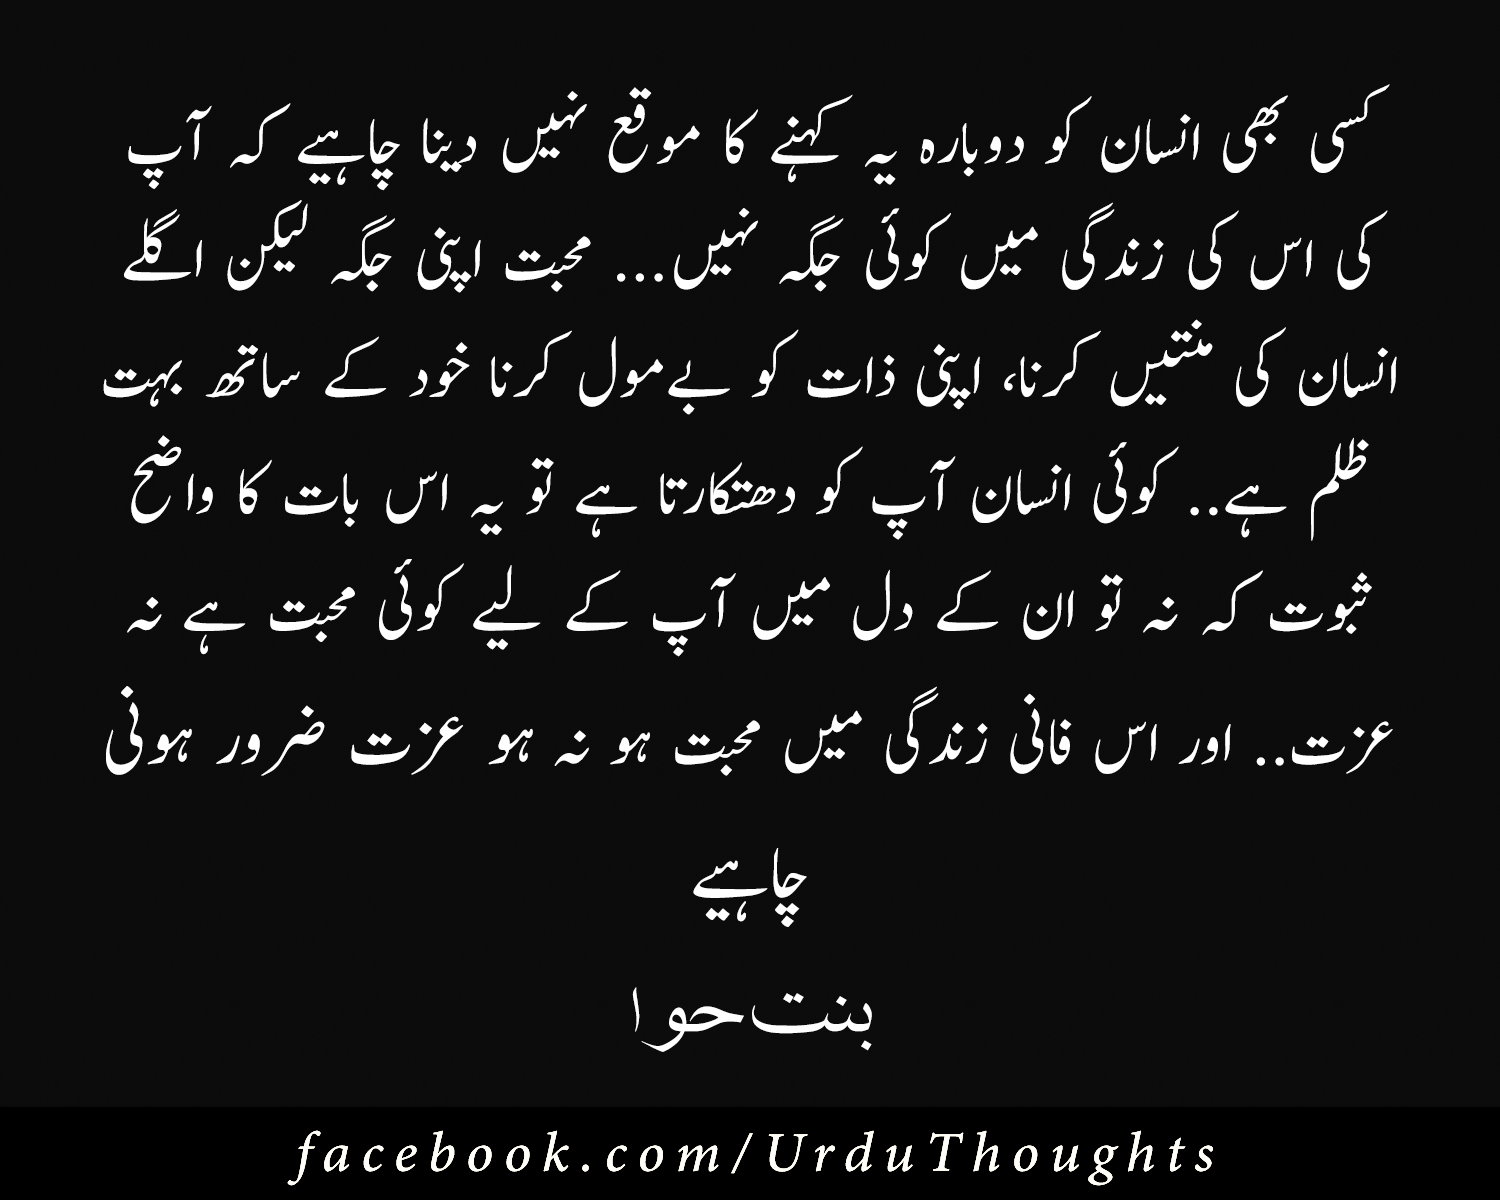 Quotes In Urdu Alluring Best Awesome Beautiful Quotes In Urdu With Pictures  Urdu Thoughts